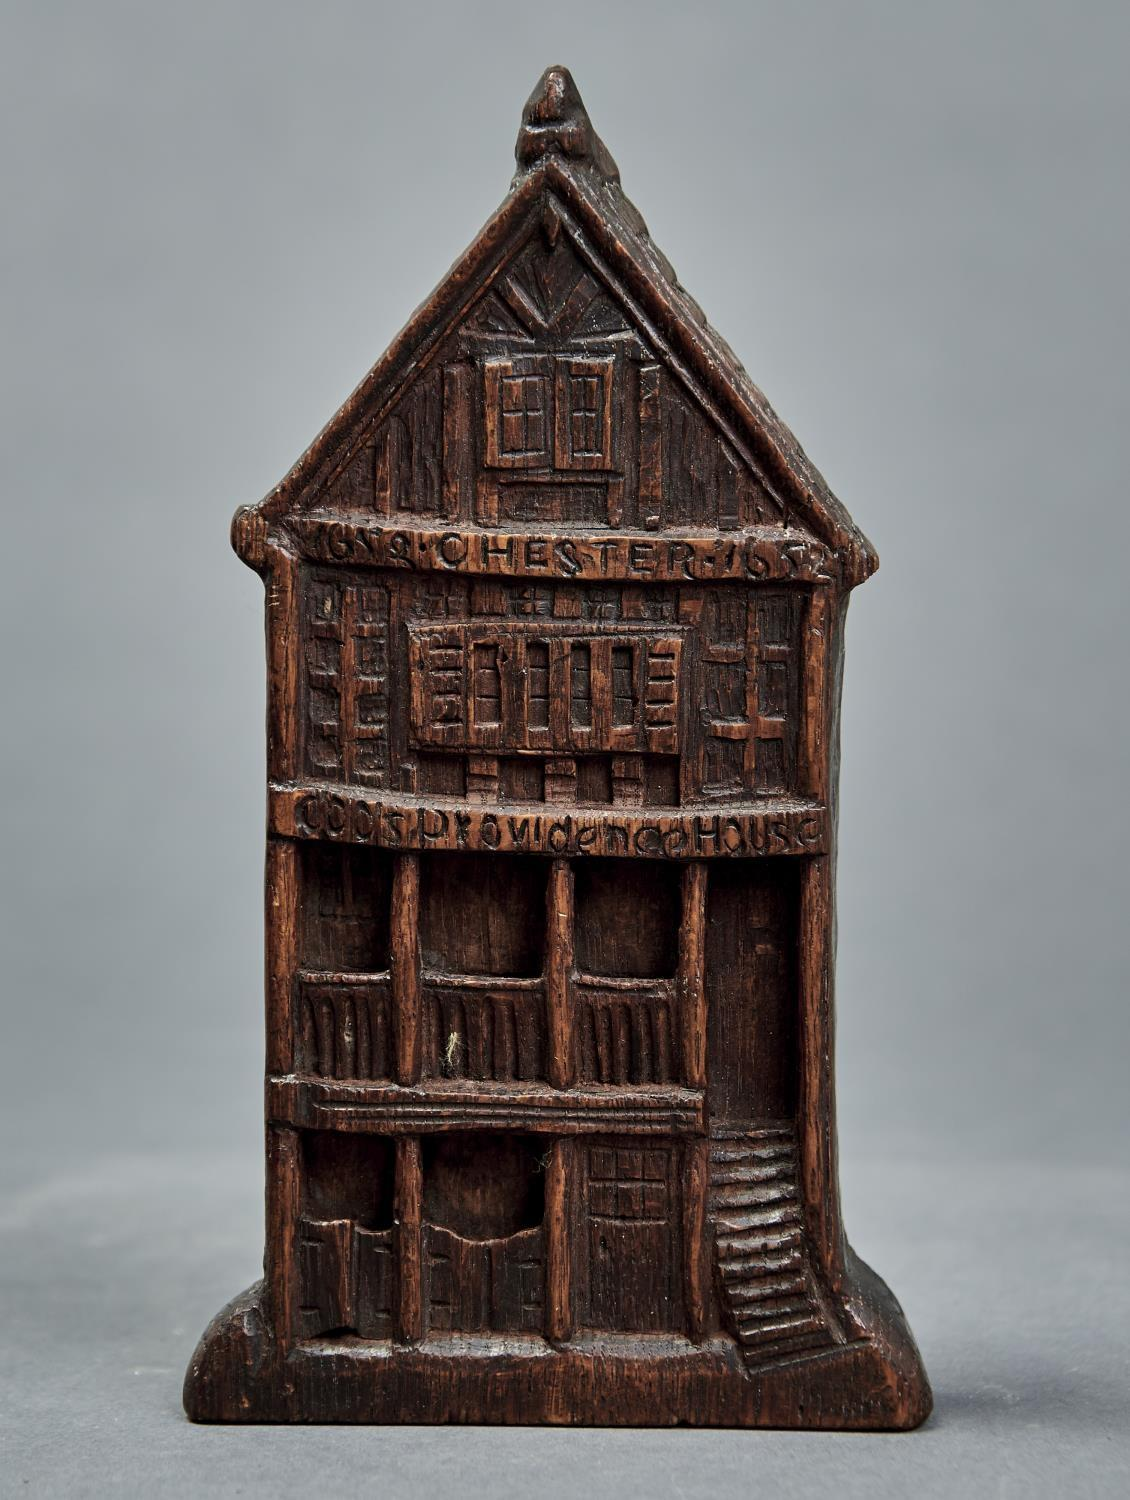 A CARVED OAK MODEL OF THE FACADE OF GODS PROVIDENT HOUSE, CHESTER., LATE 19TH C, WITH INSCRIPTION